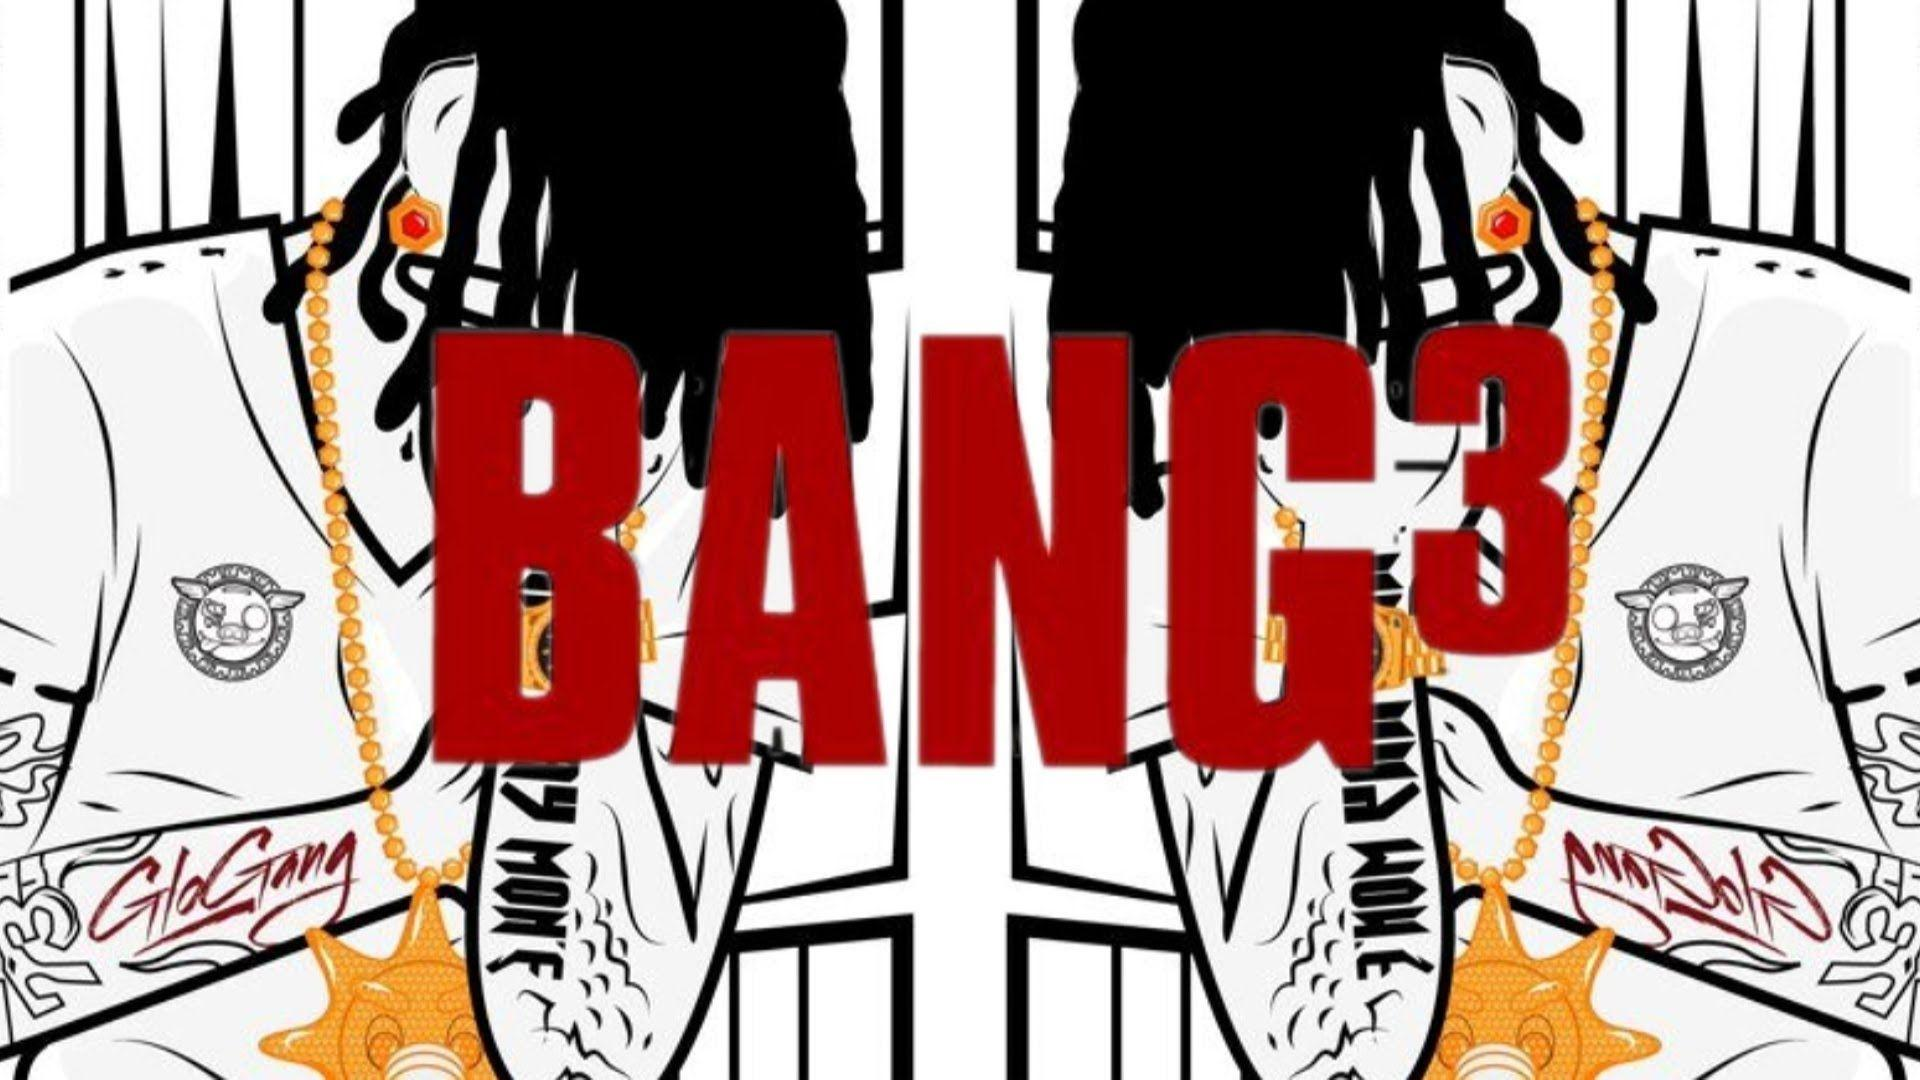 Chief keef logo bang 3 – abzx